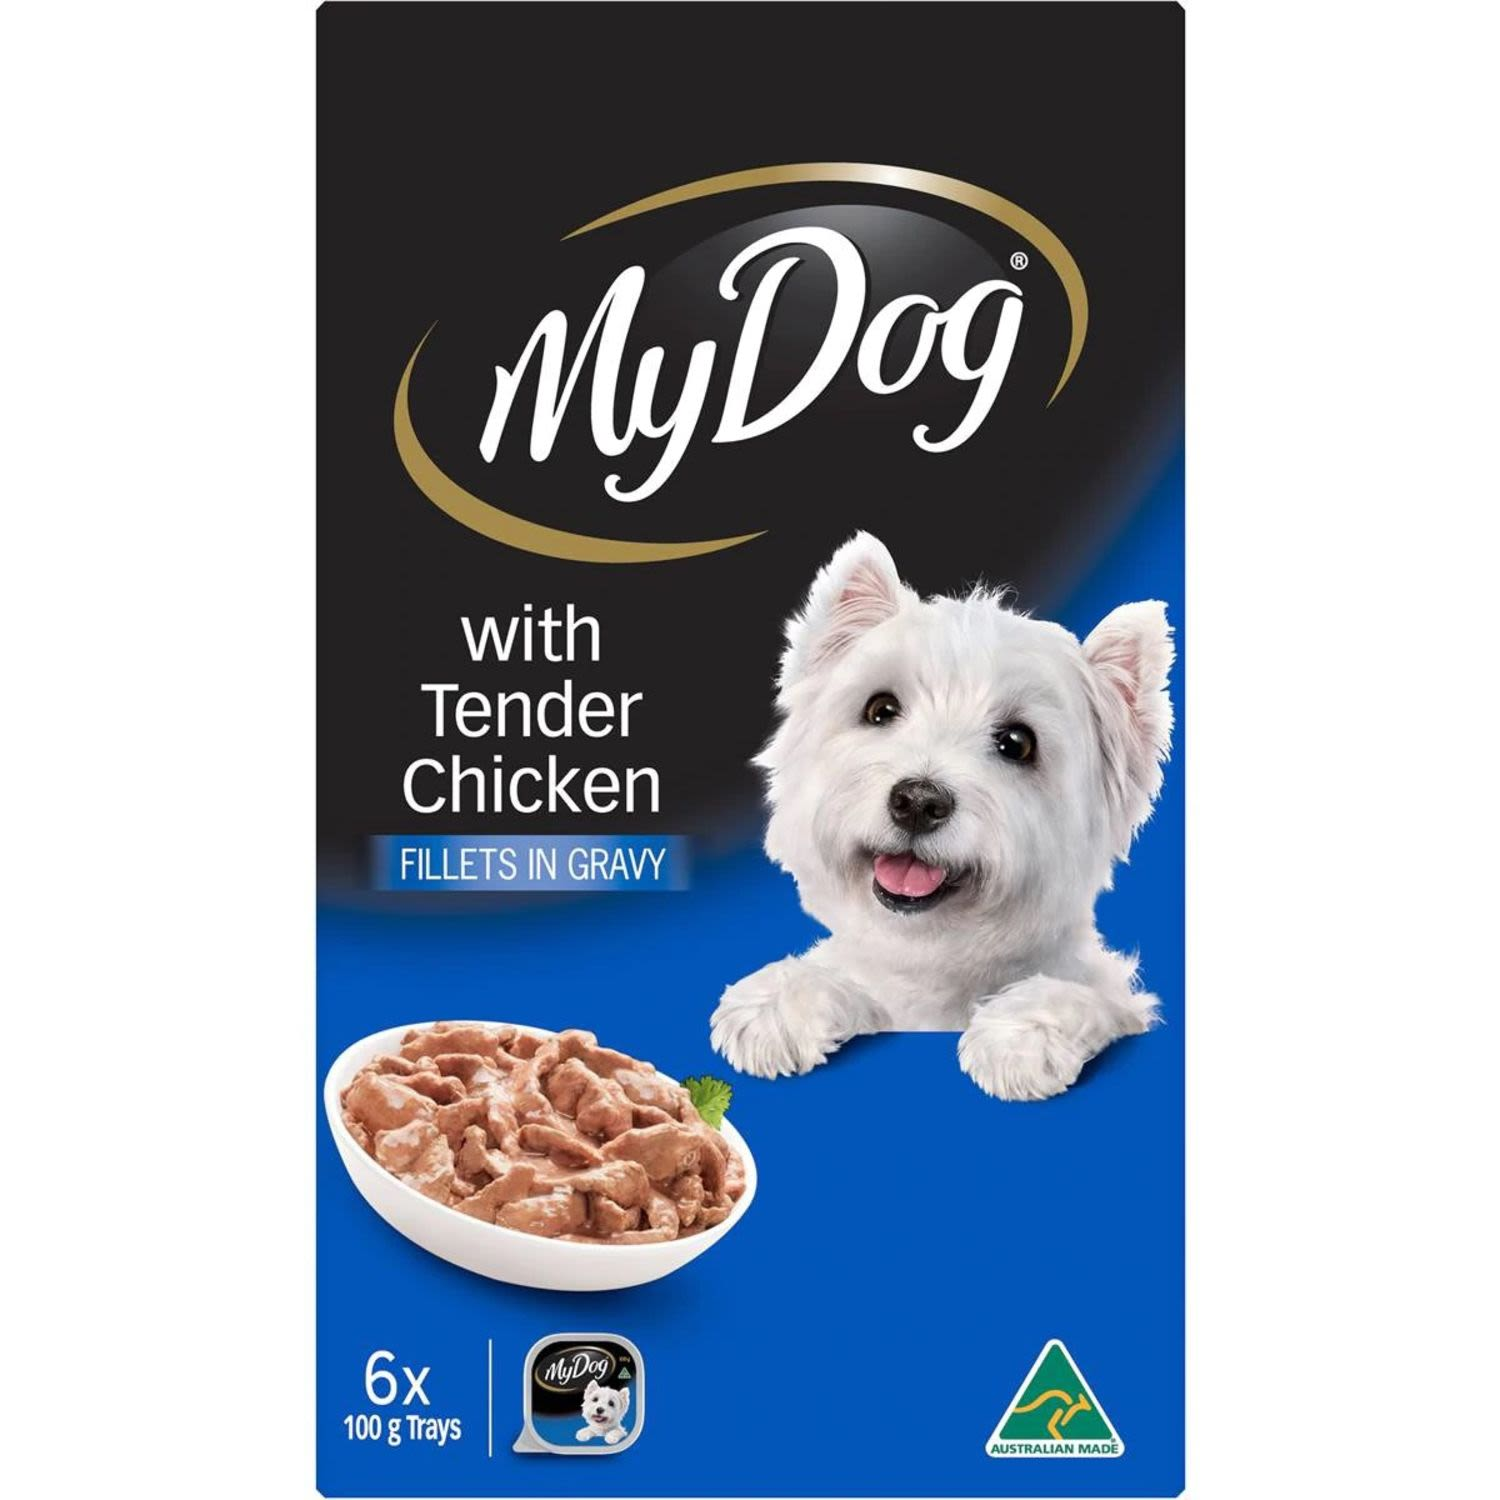 My Dog Fillets In Gravy With Tender Chicken Wet Dog Food Trays, 6 Each